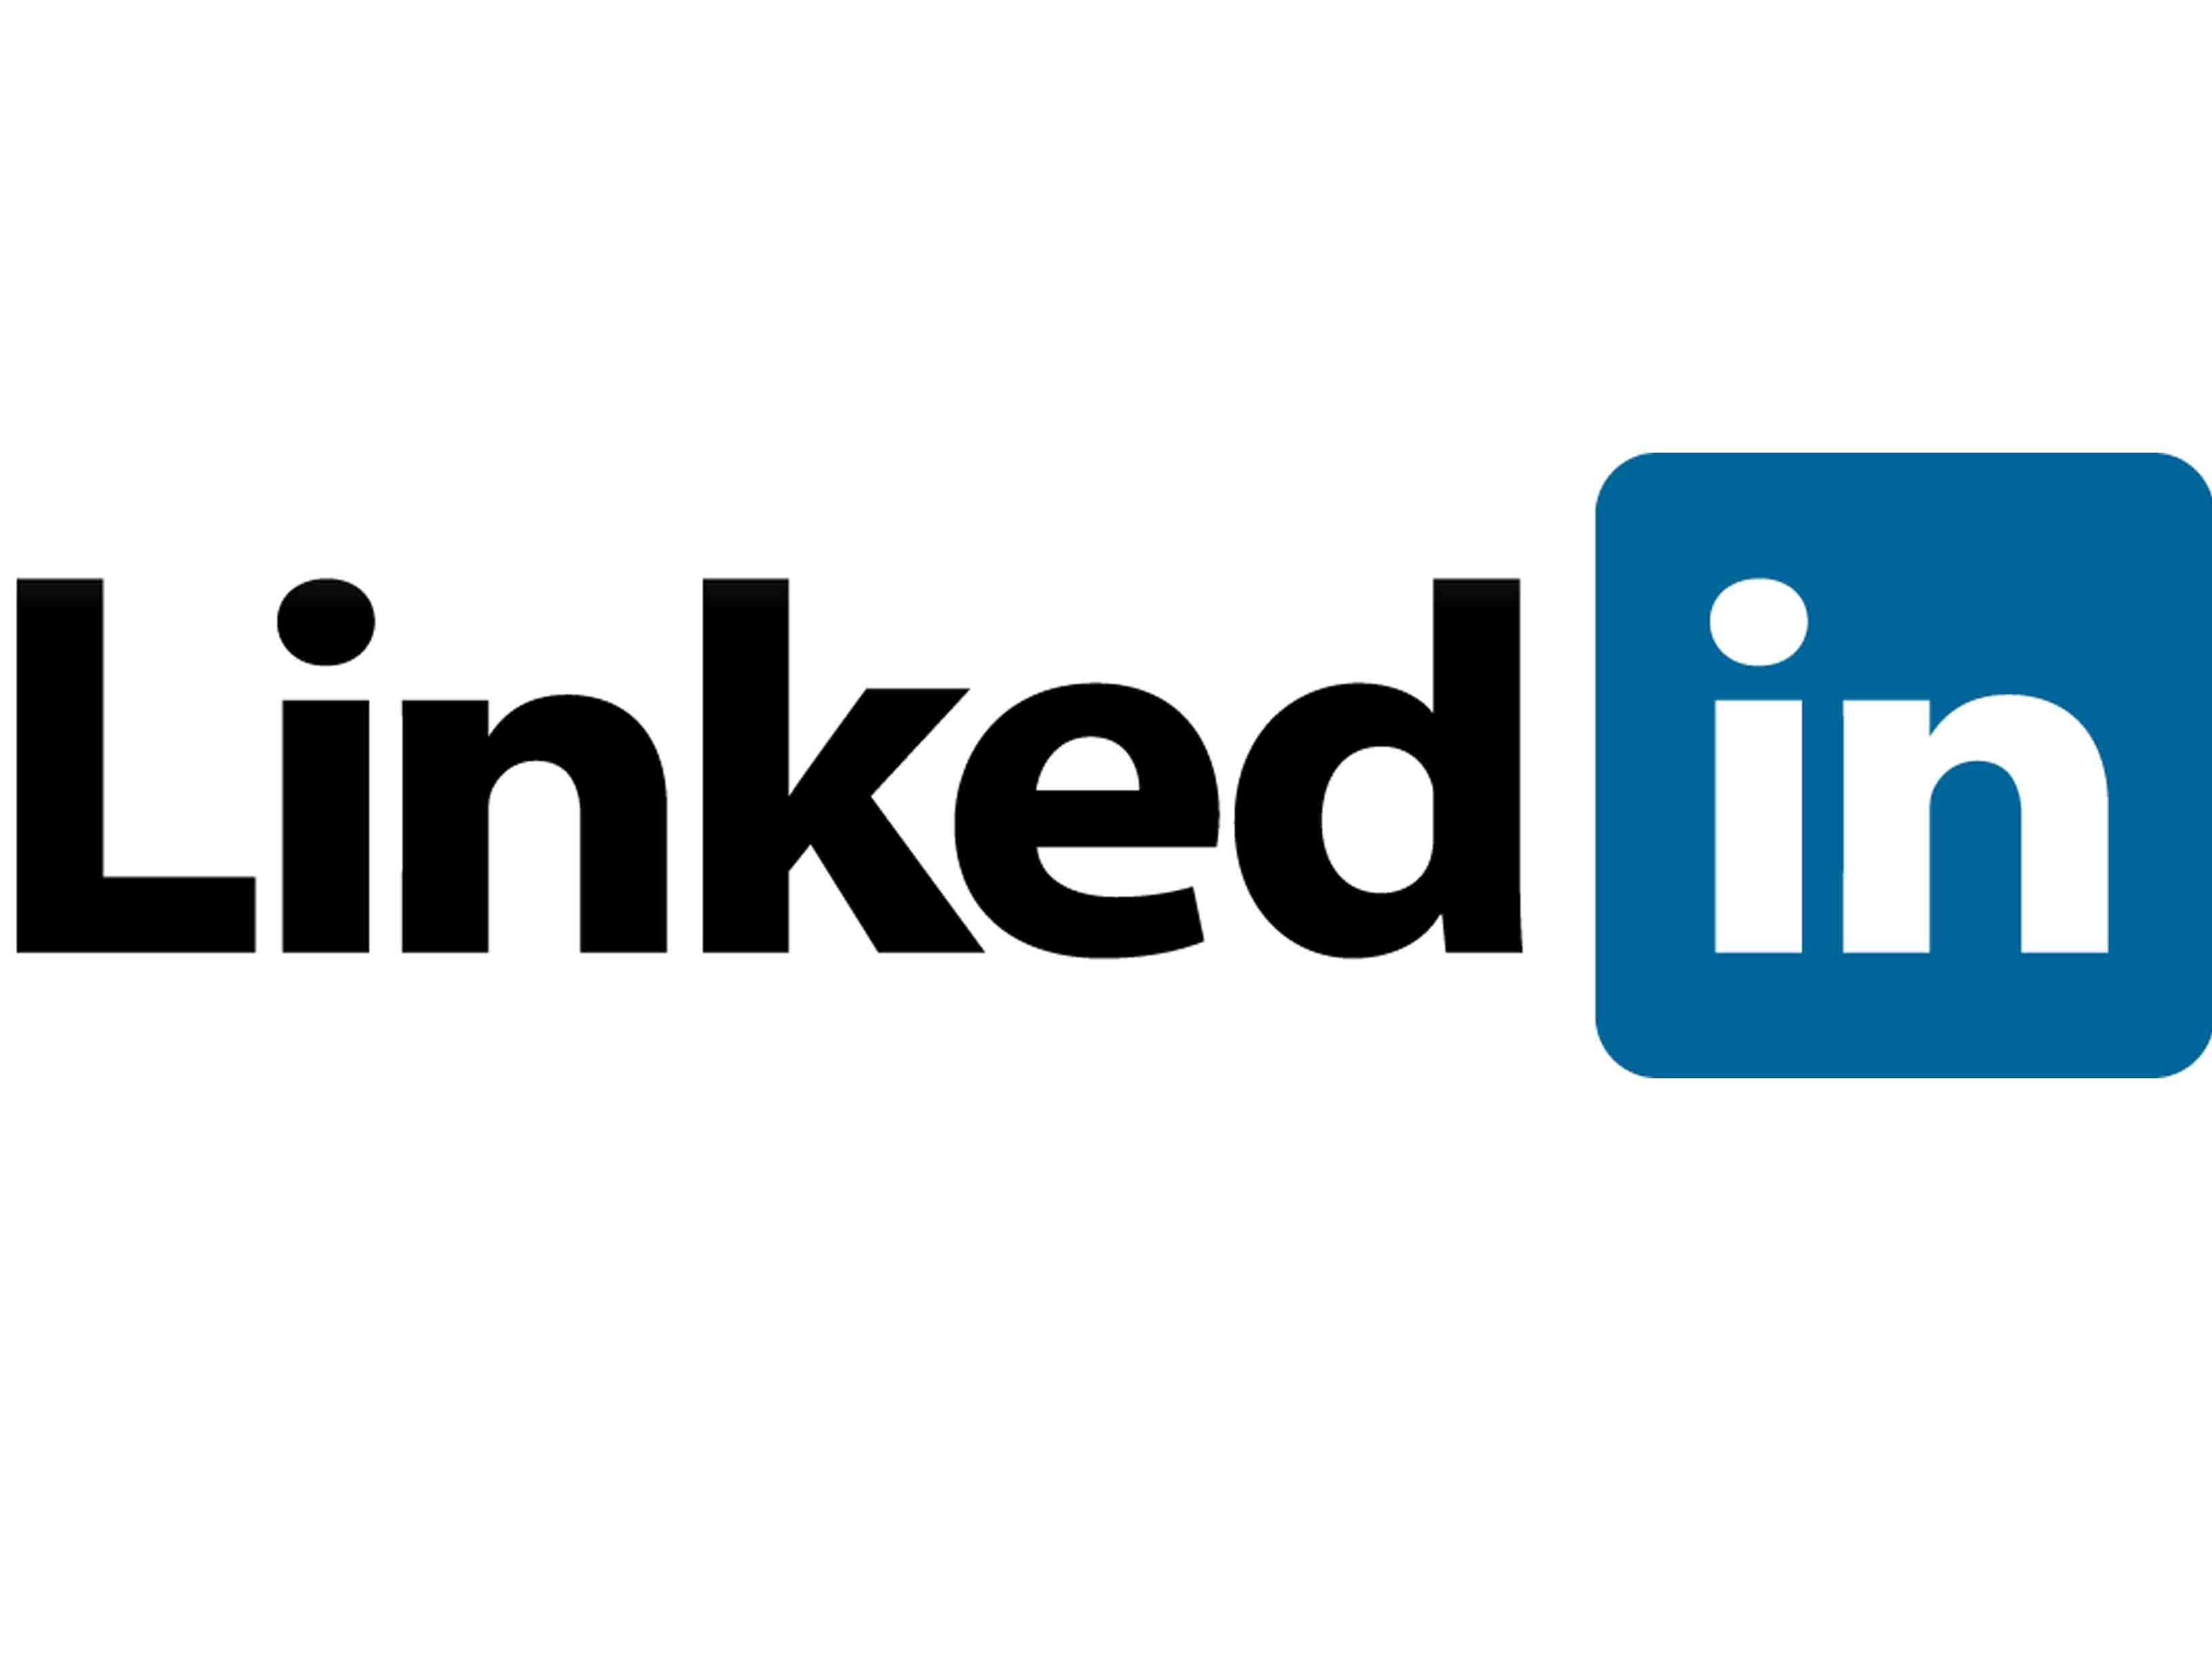 LinkedIn - Virtual recruiting platform